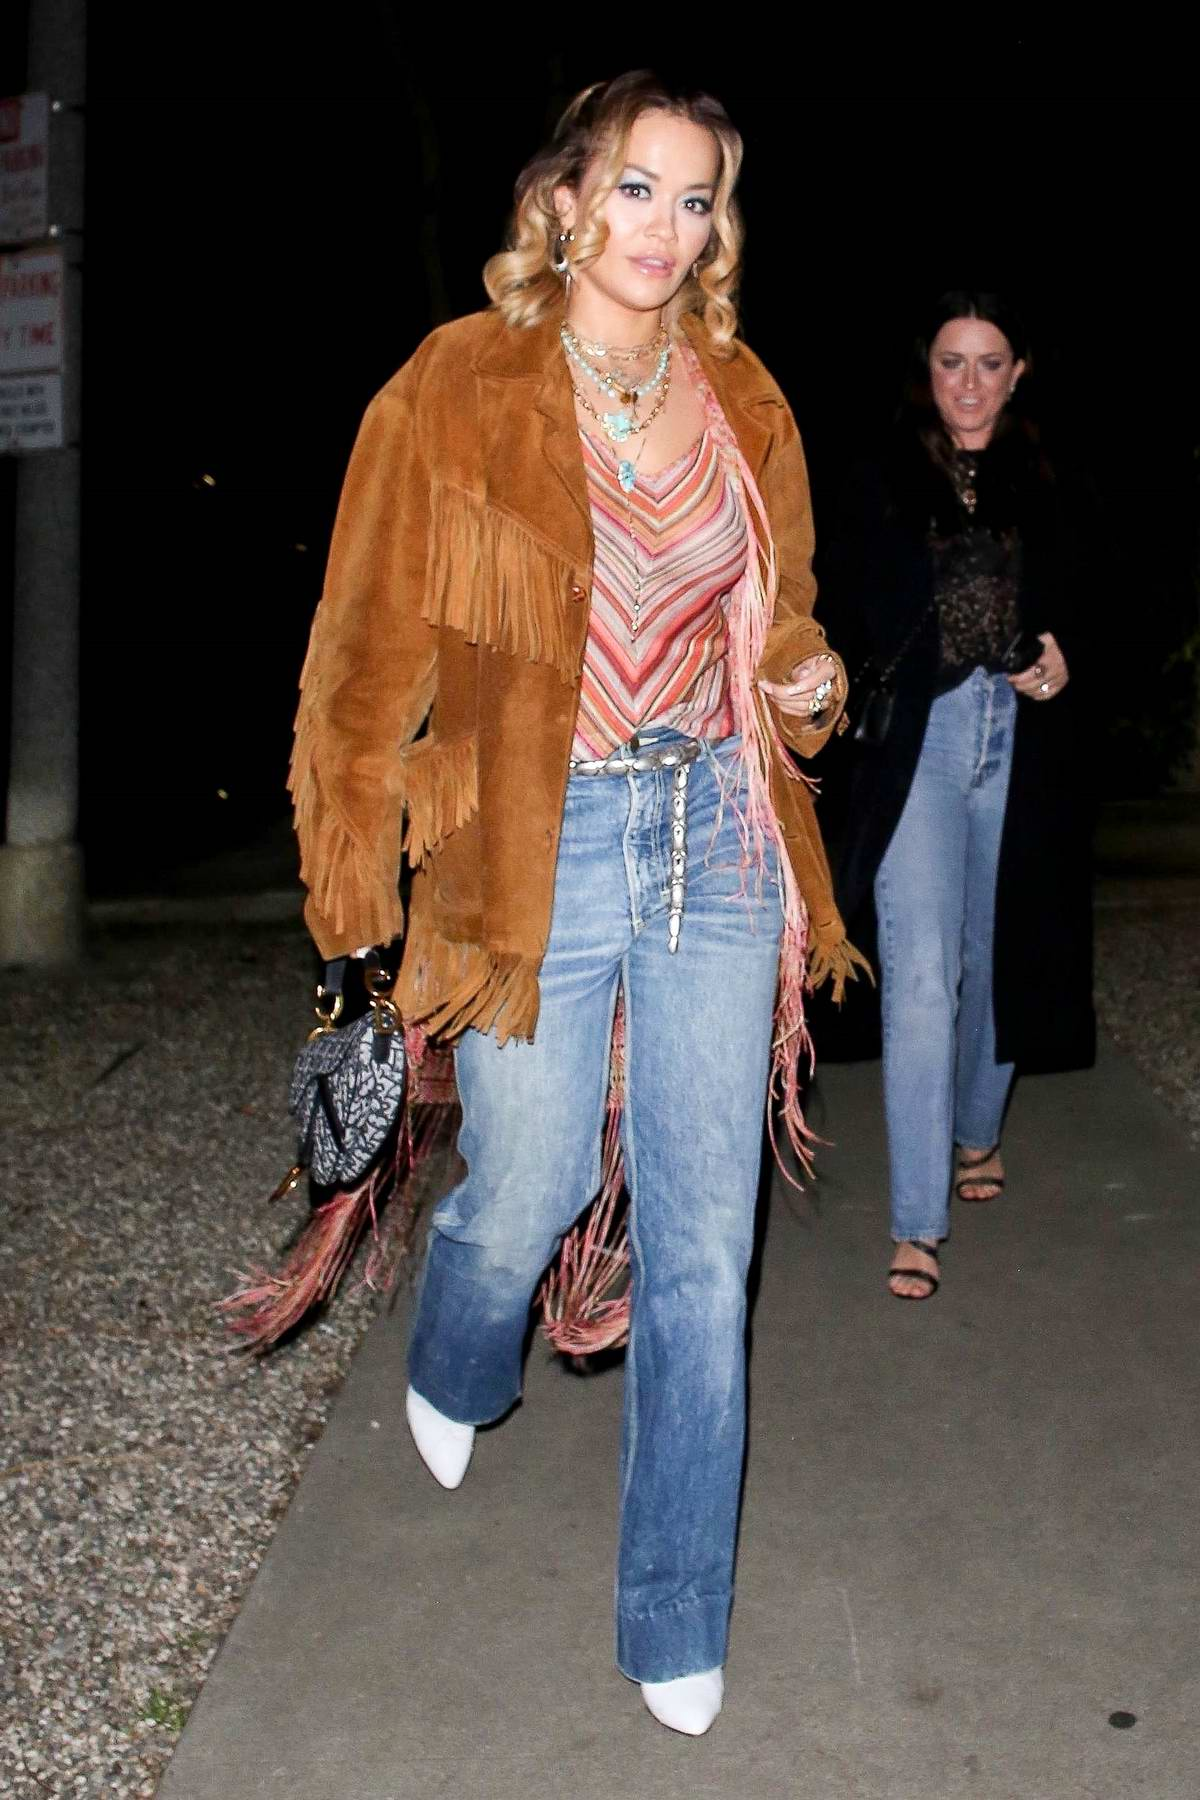 Rita Ora rocks a fringe jacket as she steps out with friends for dinner in Los Feliz, California